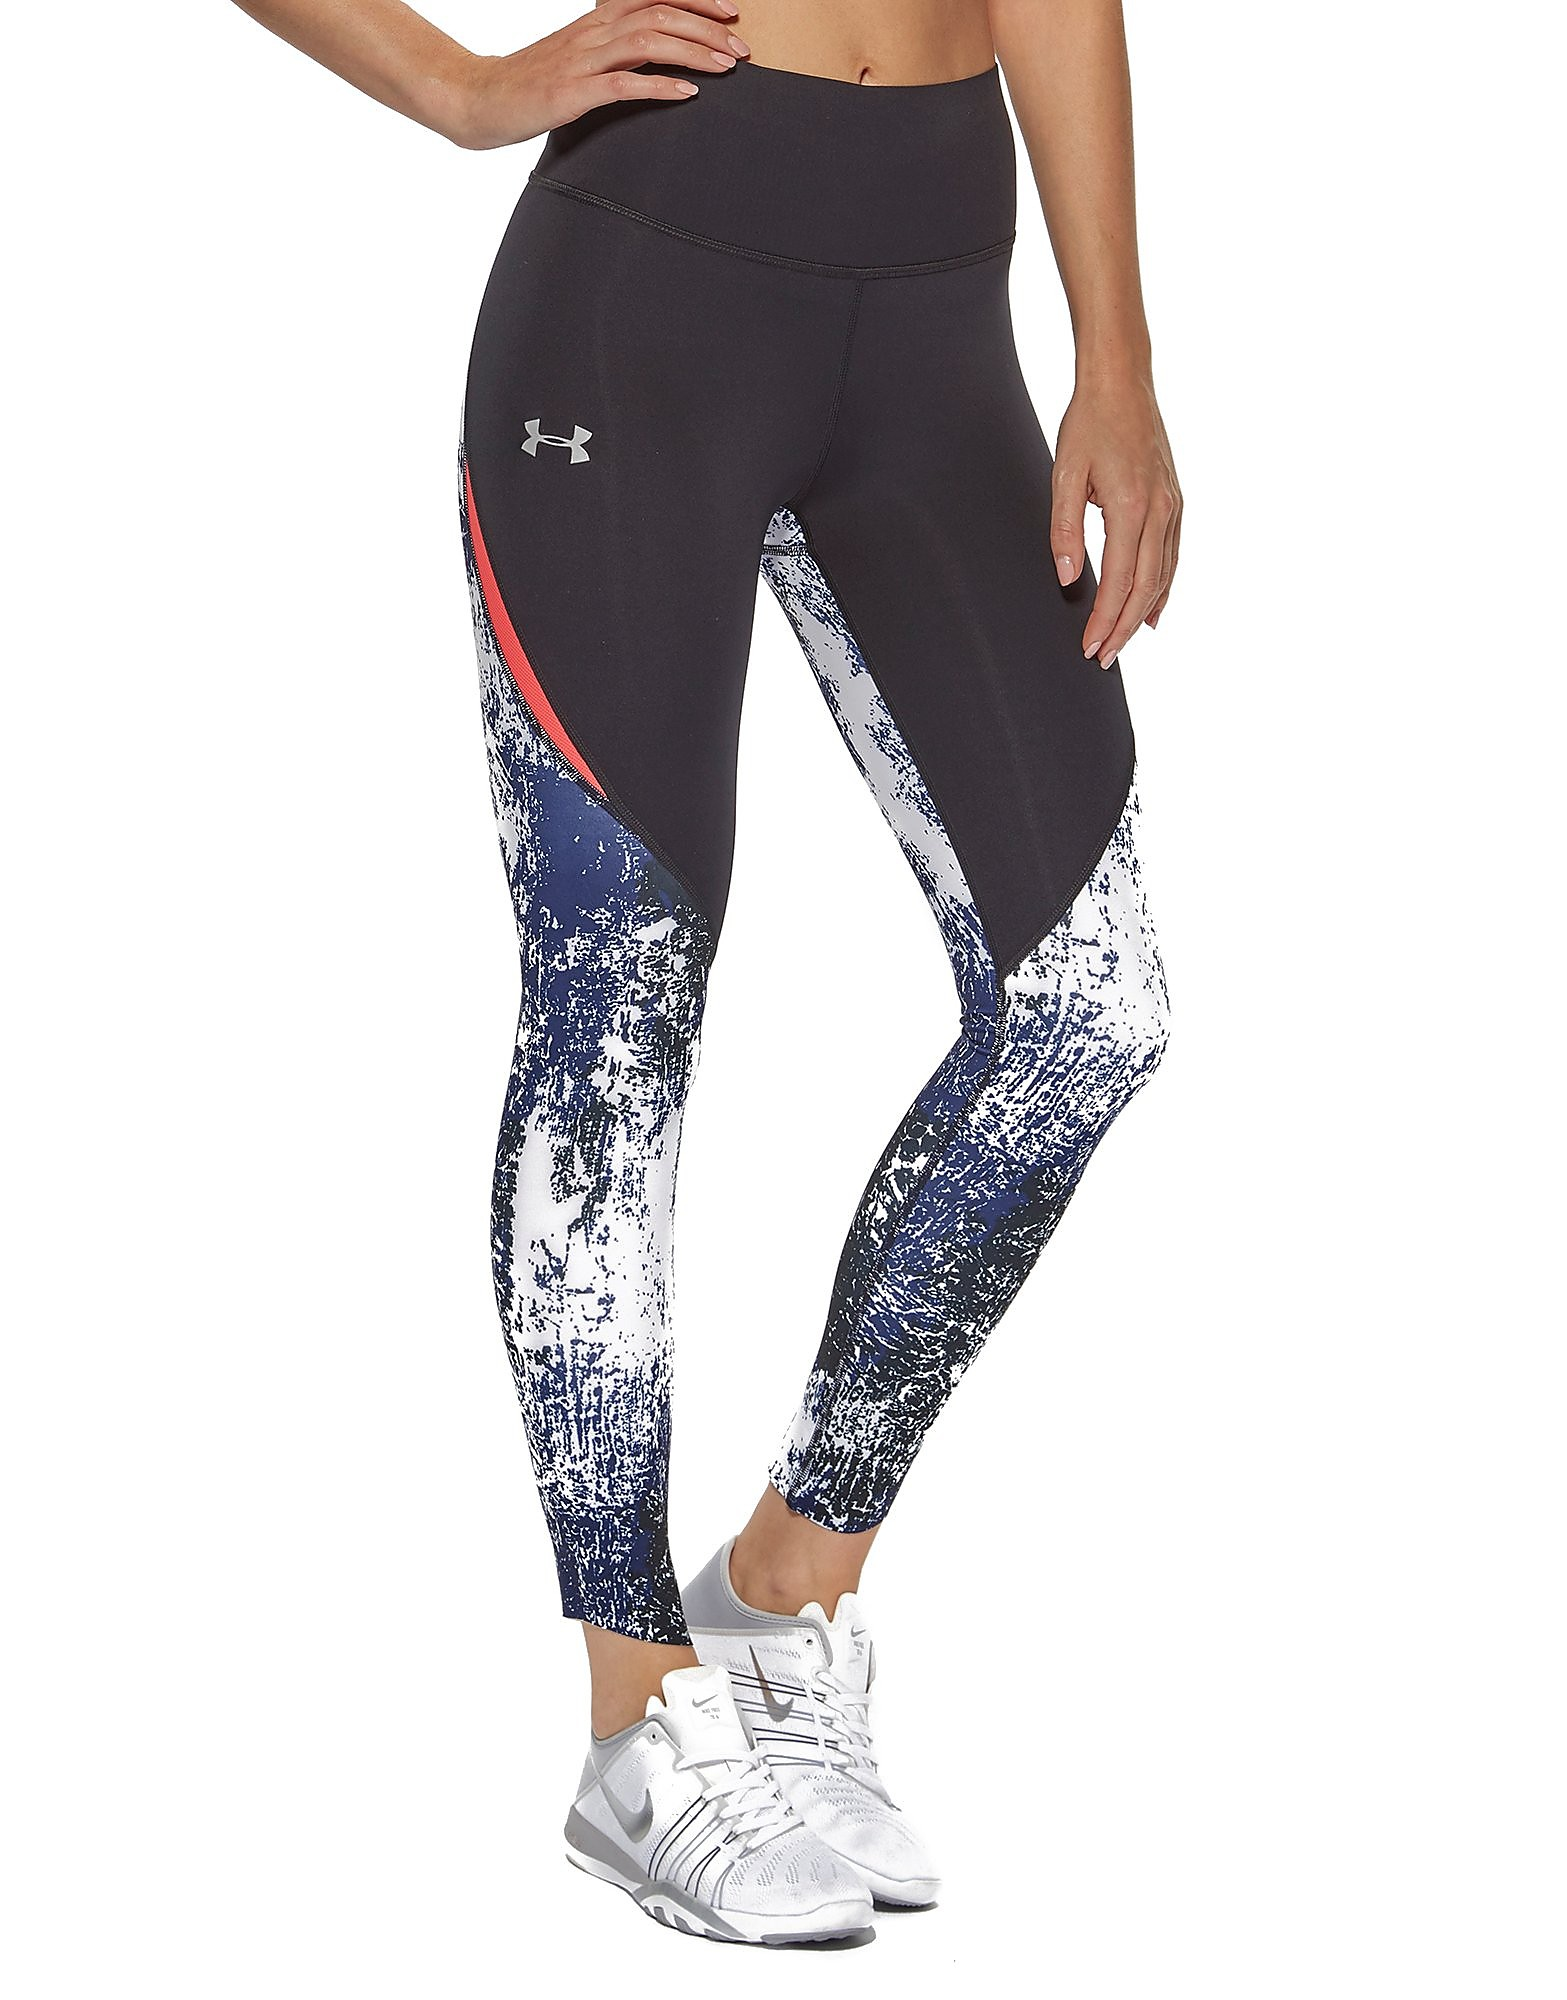 Under Armour Run True BreathLux Leggings